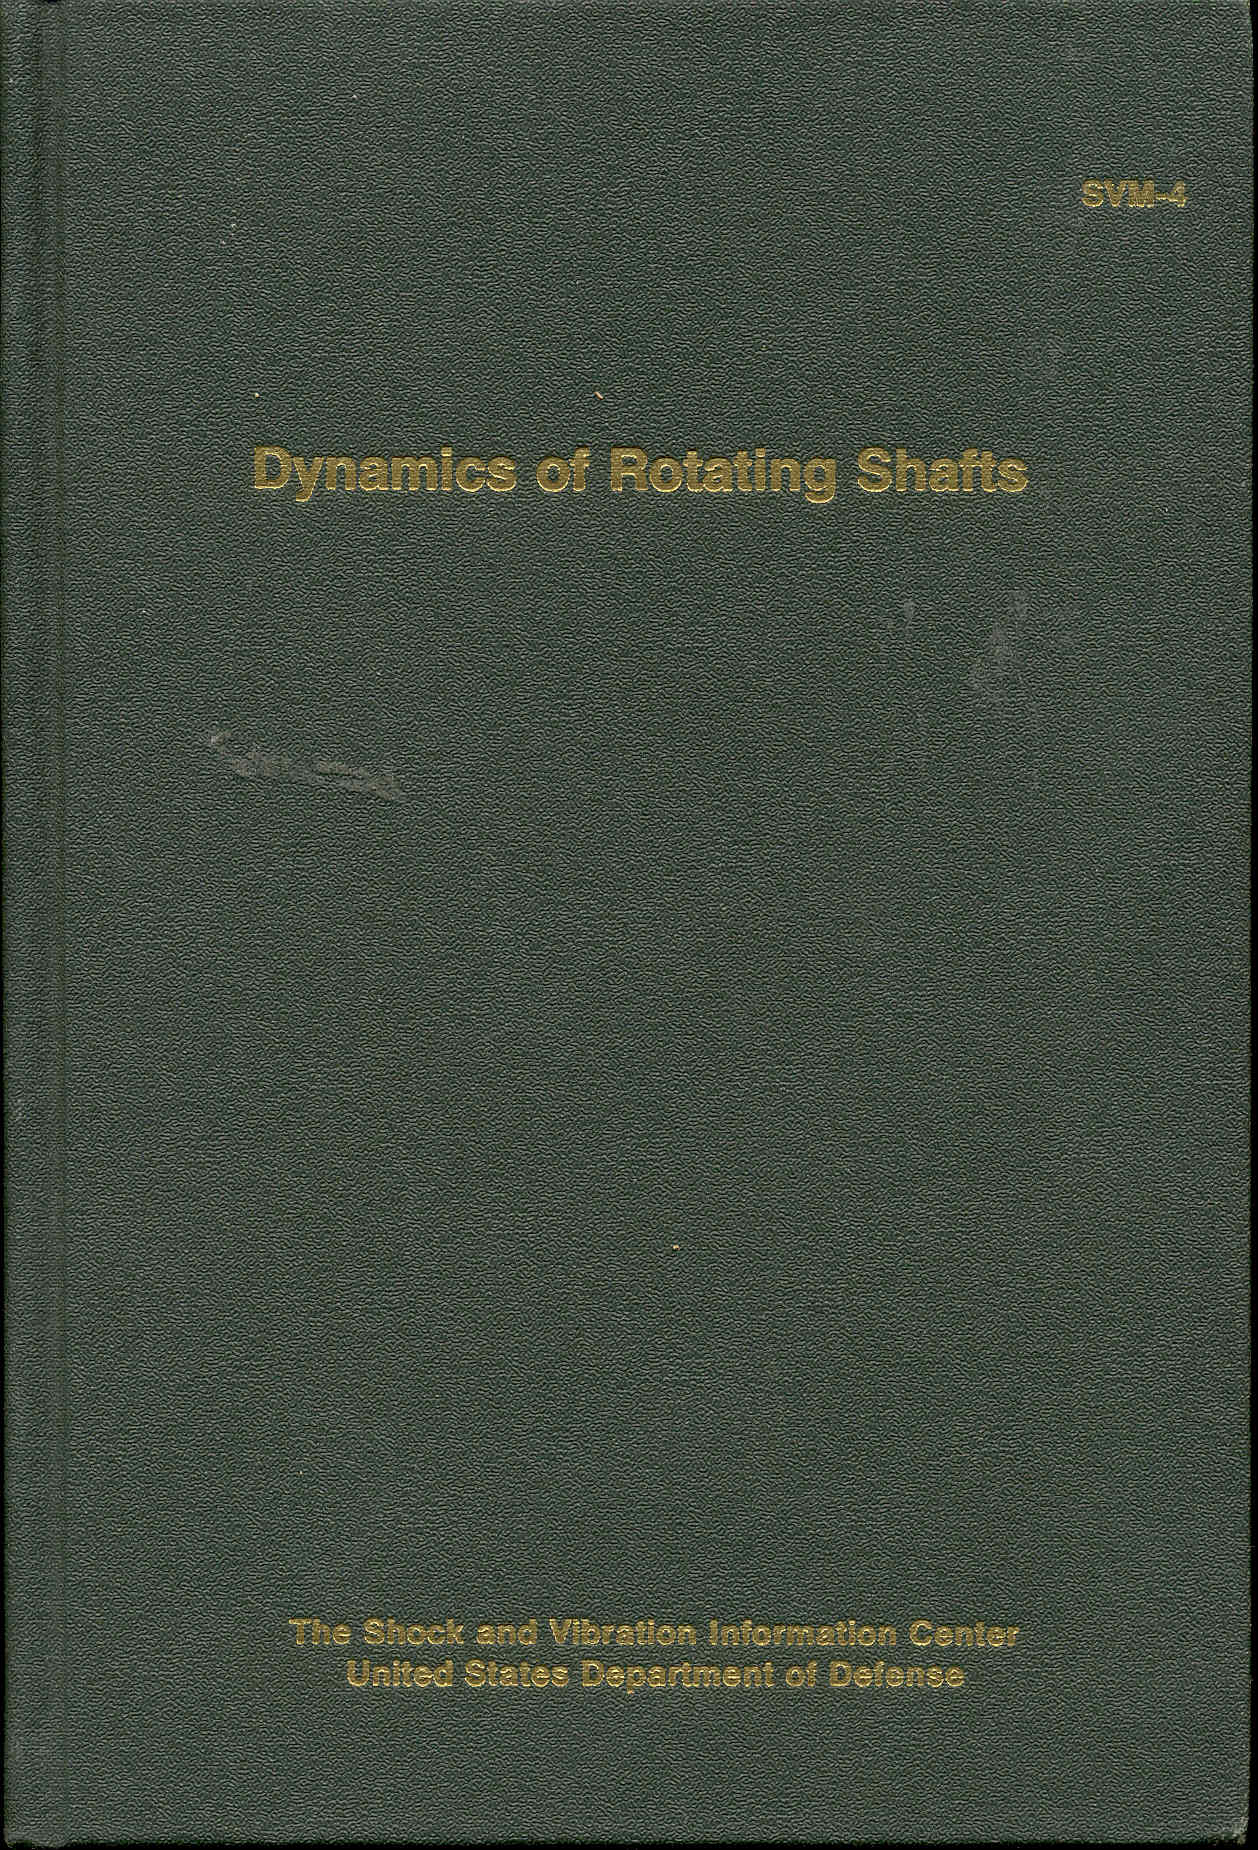 Image for Dynamics of Rotating Shafts